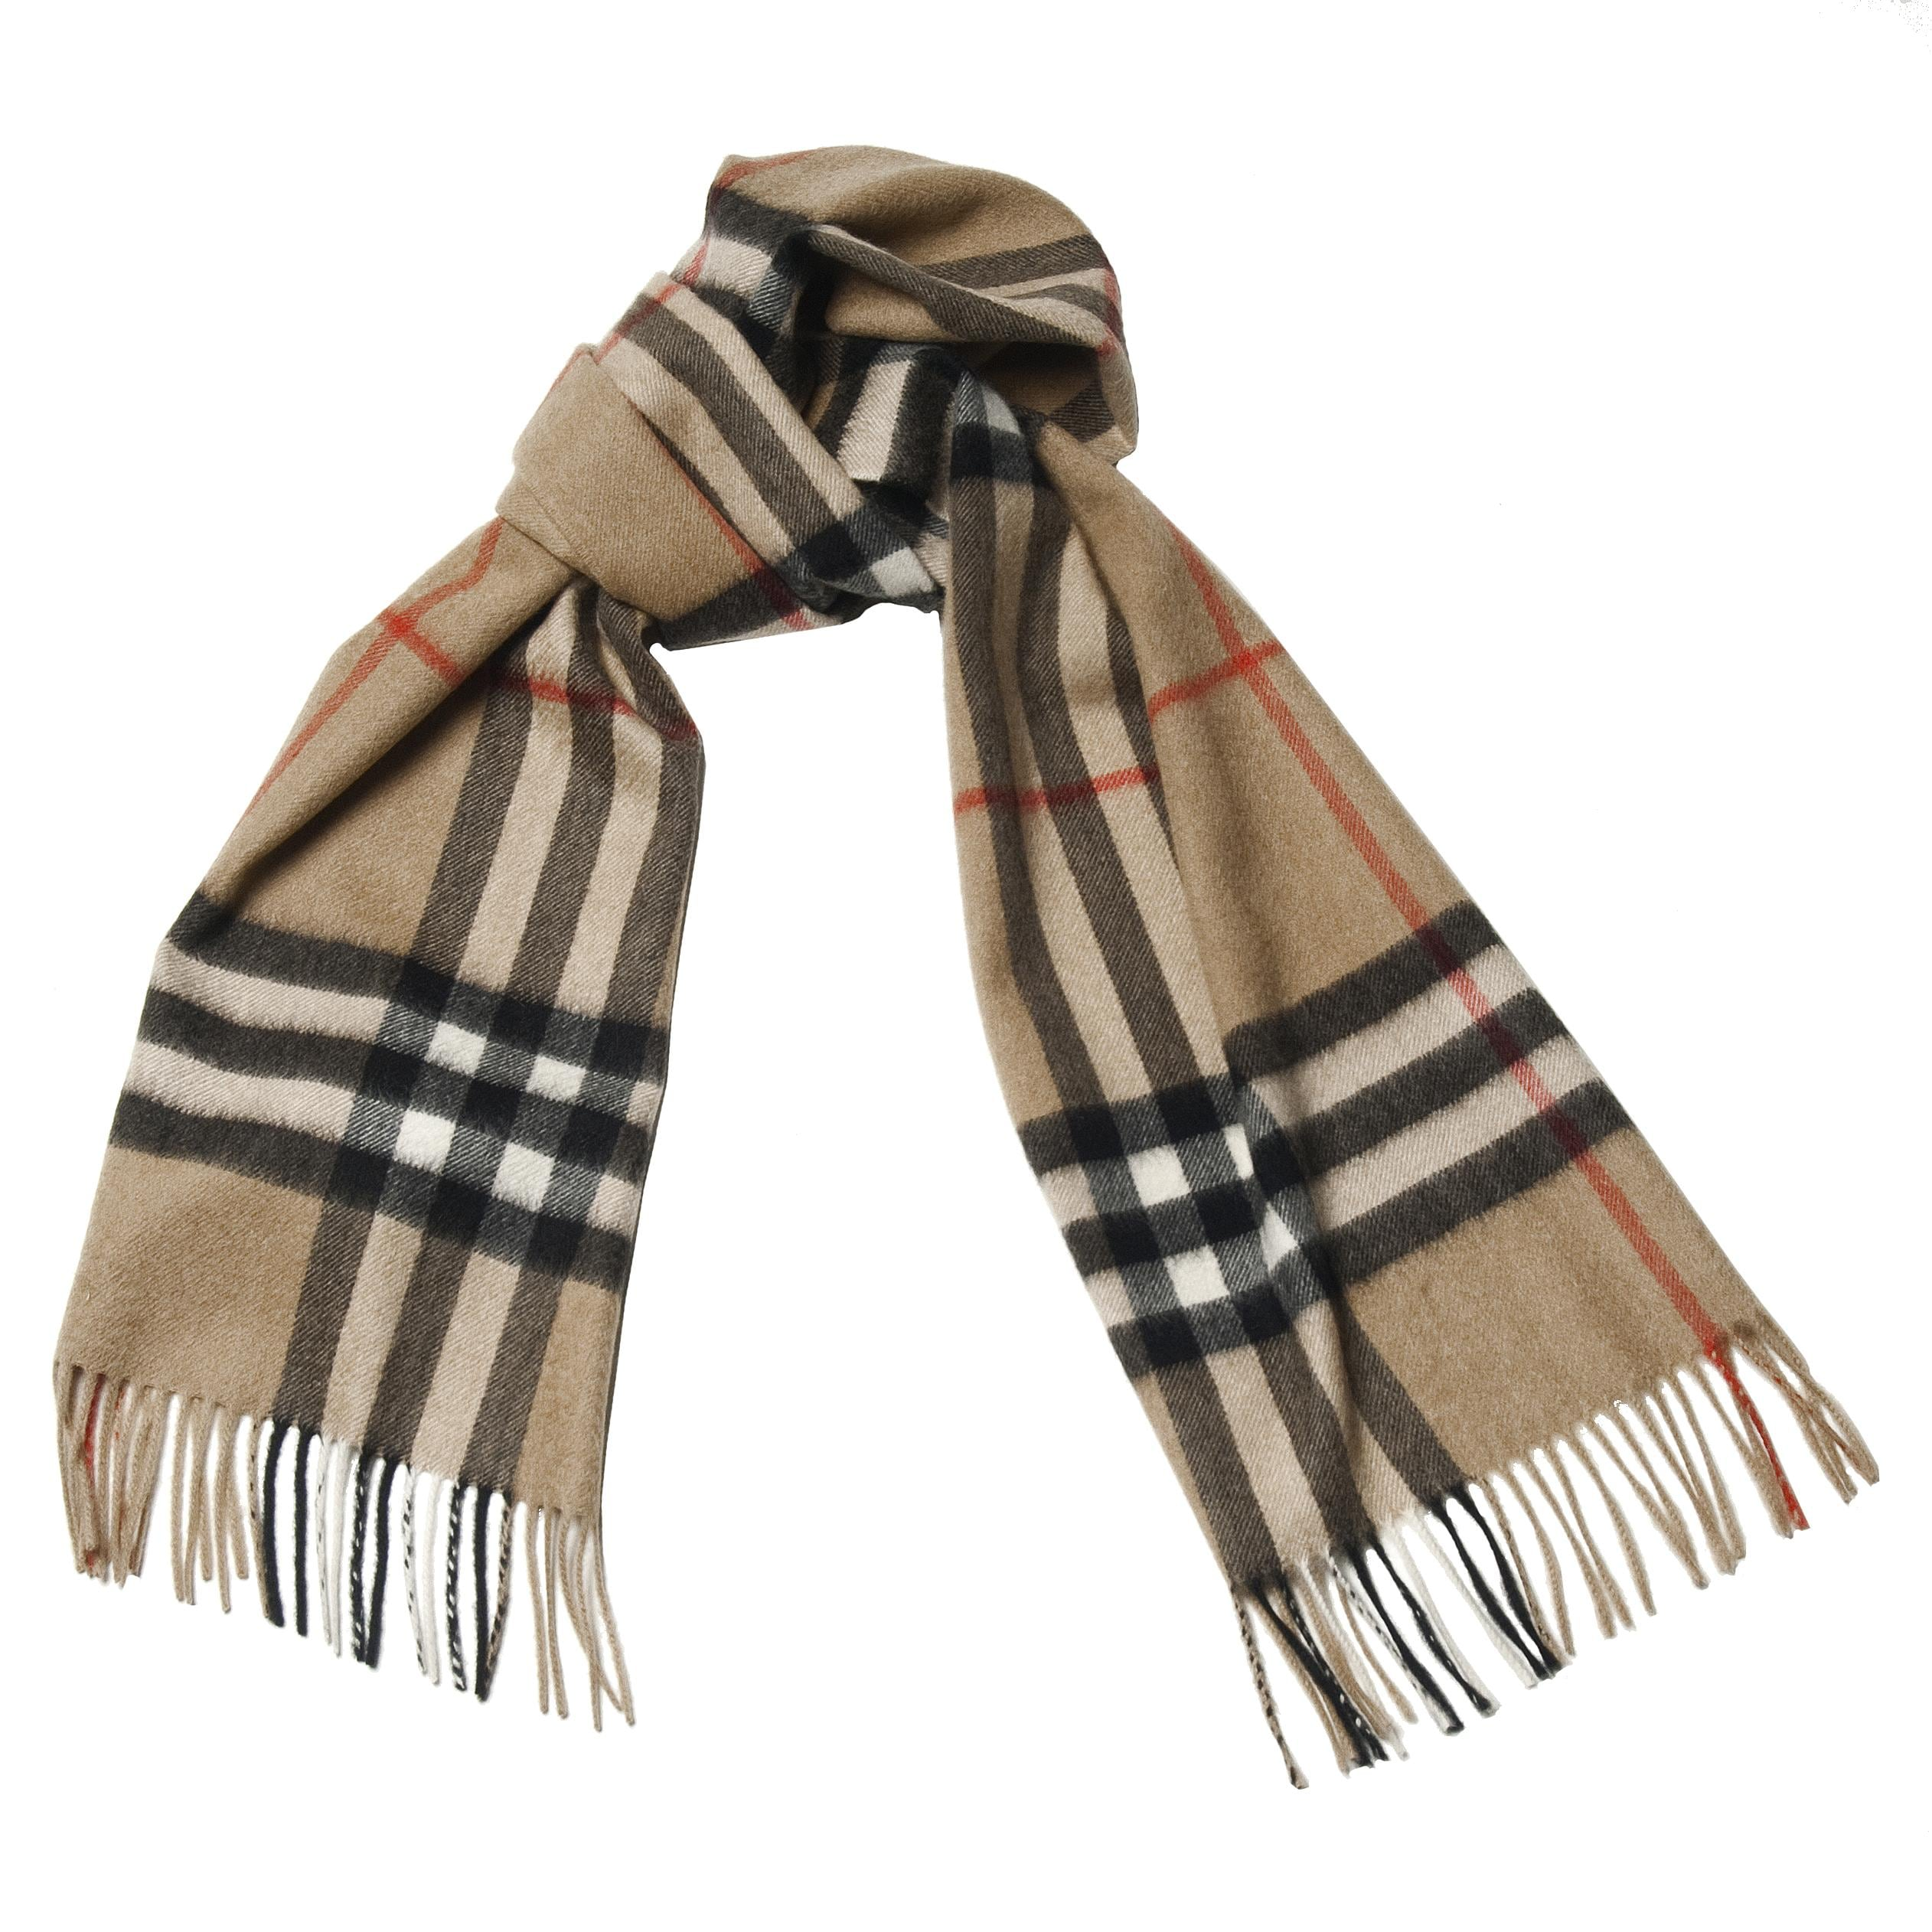 Burberry Plaid Camel Cashmere Scarf  JustCampus Burberry Scarf Women